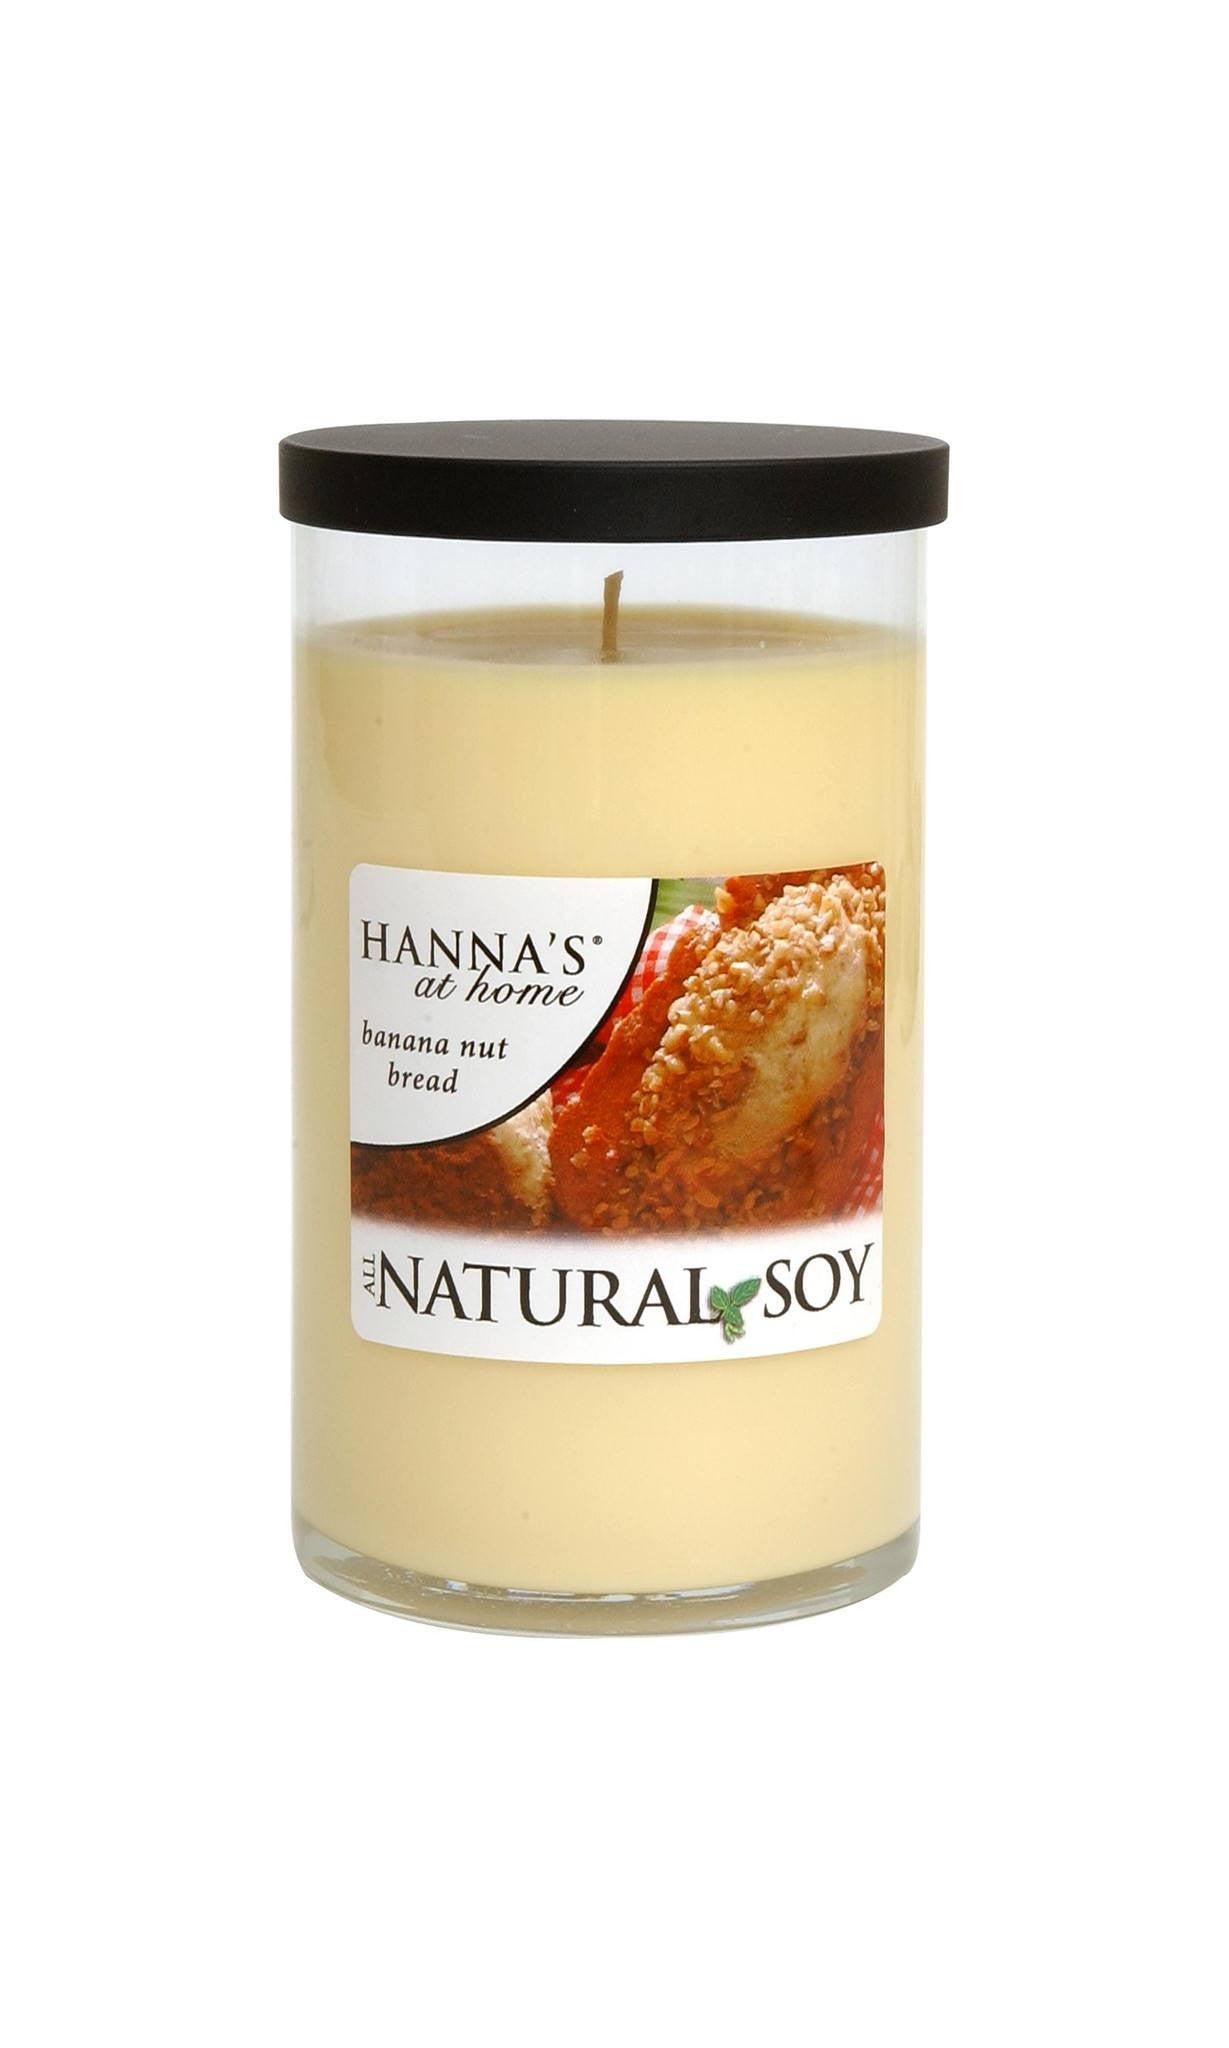 Natural Soy Banana Nut Bread Scented Soy Candle - Candlemart.com - 1